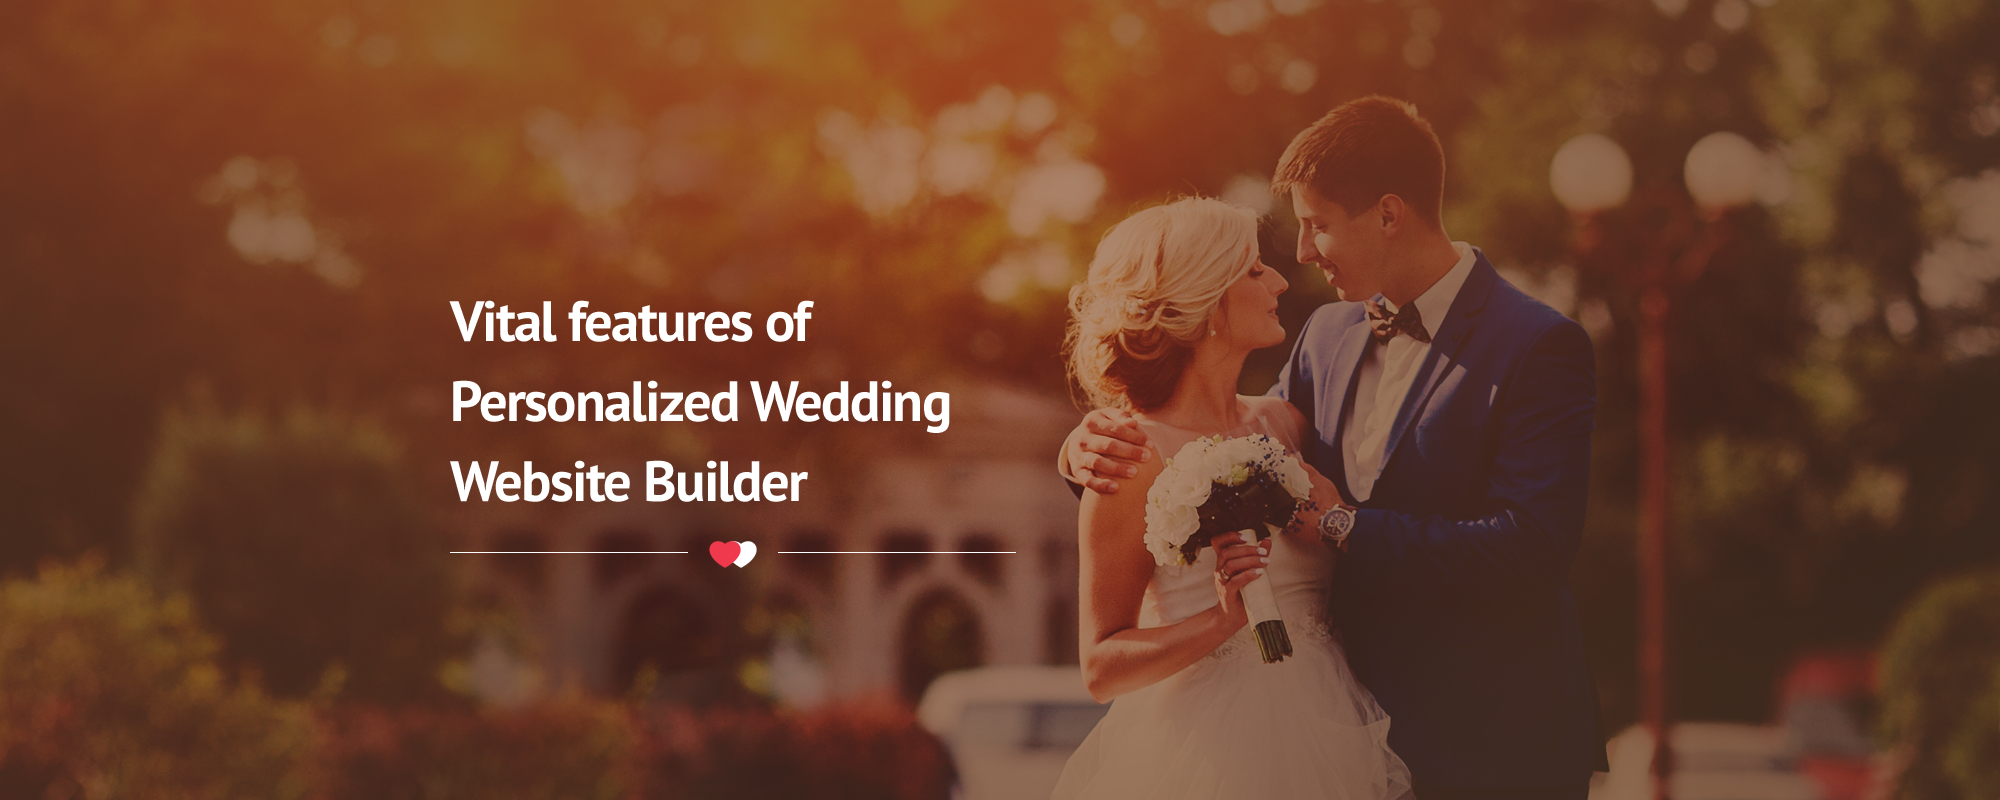 Business Model & Features Of  Wedding Website Building Platforms (Startup Ideas)